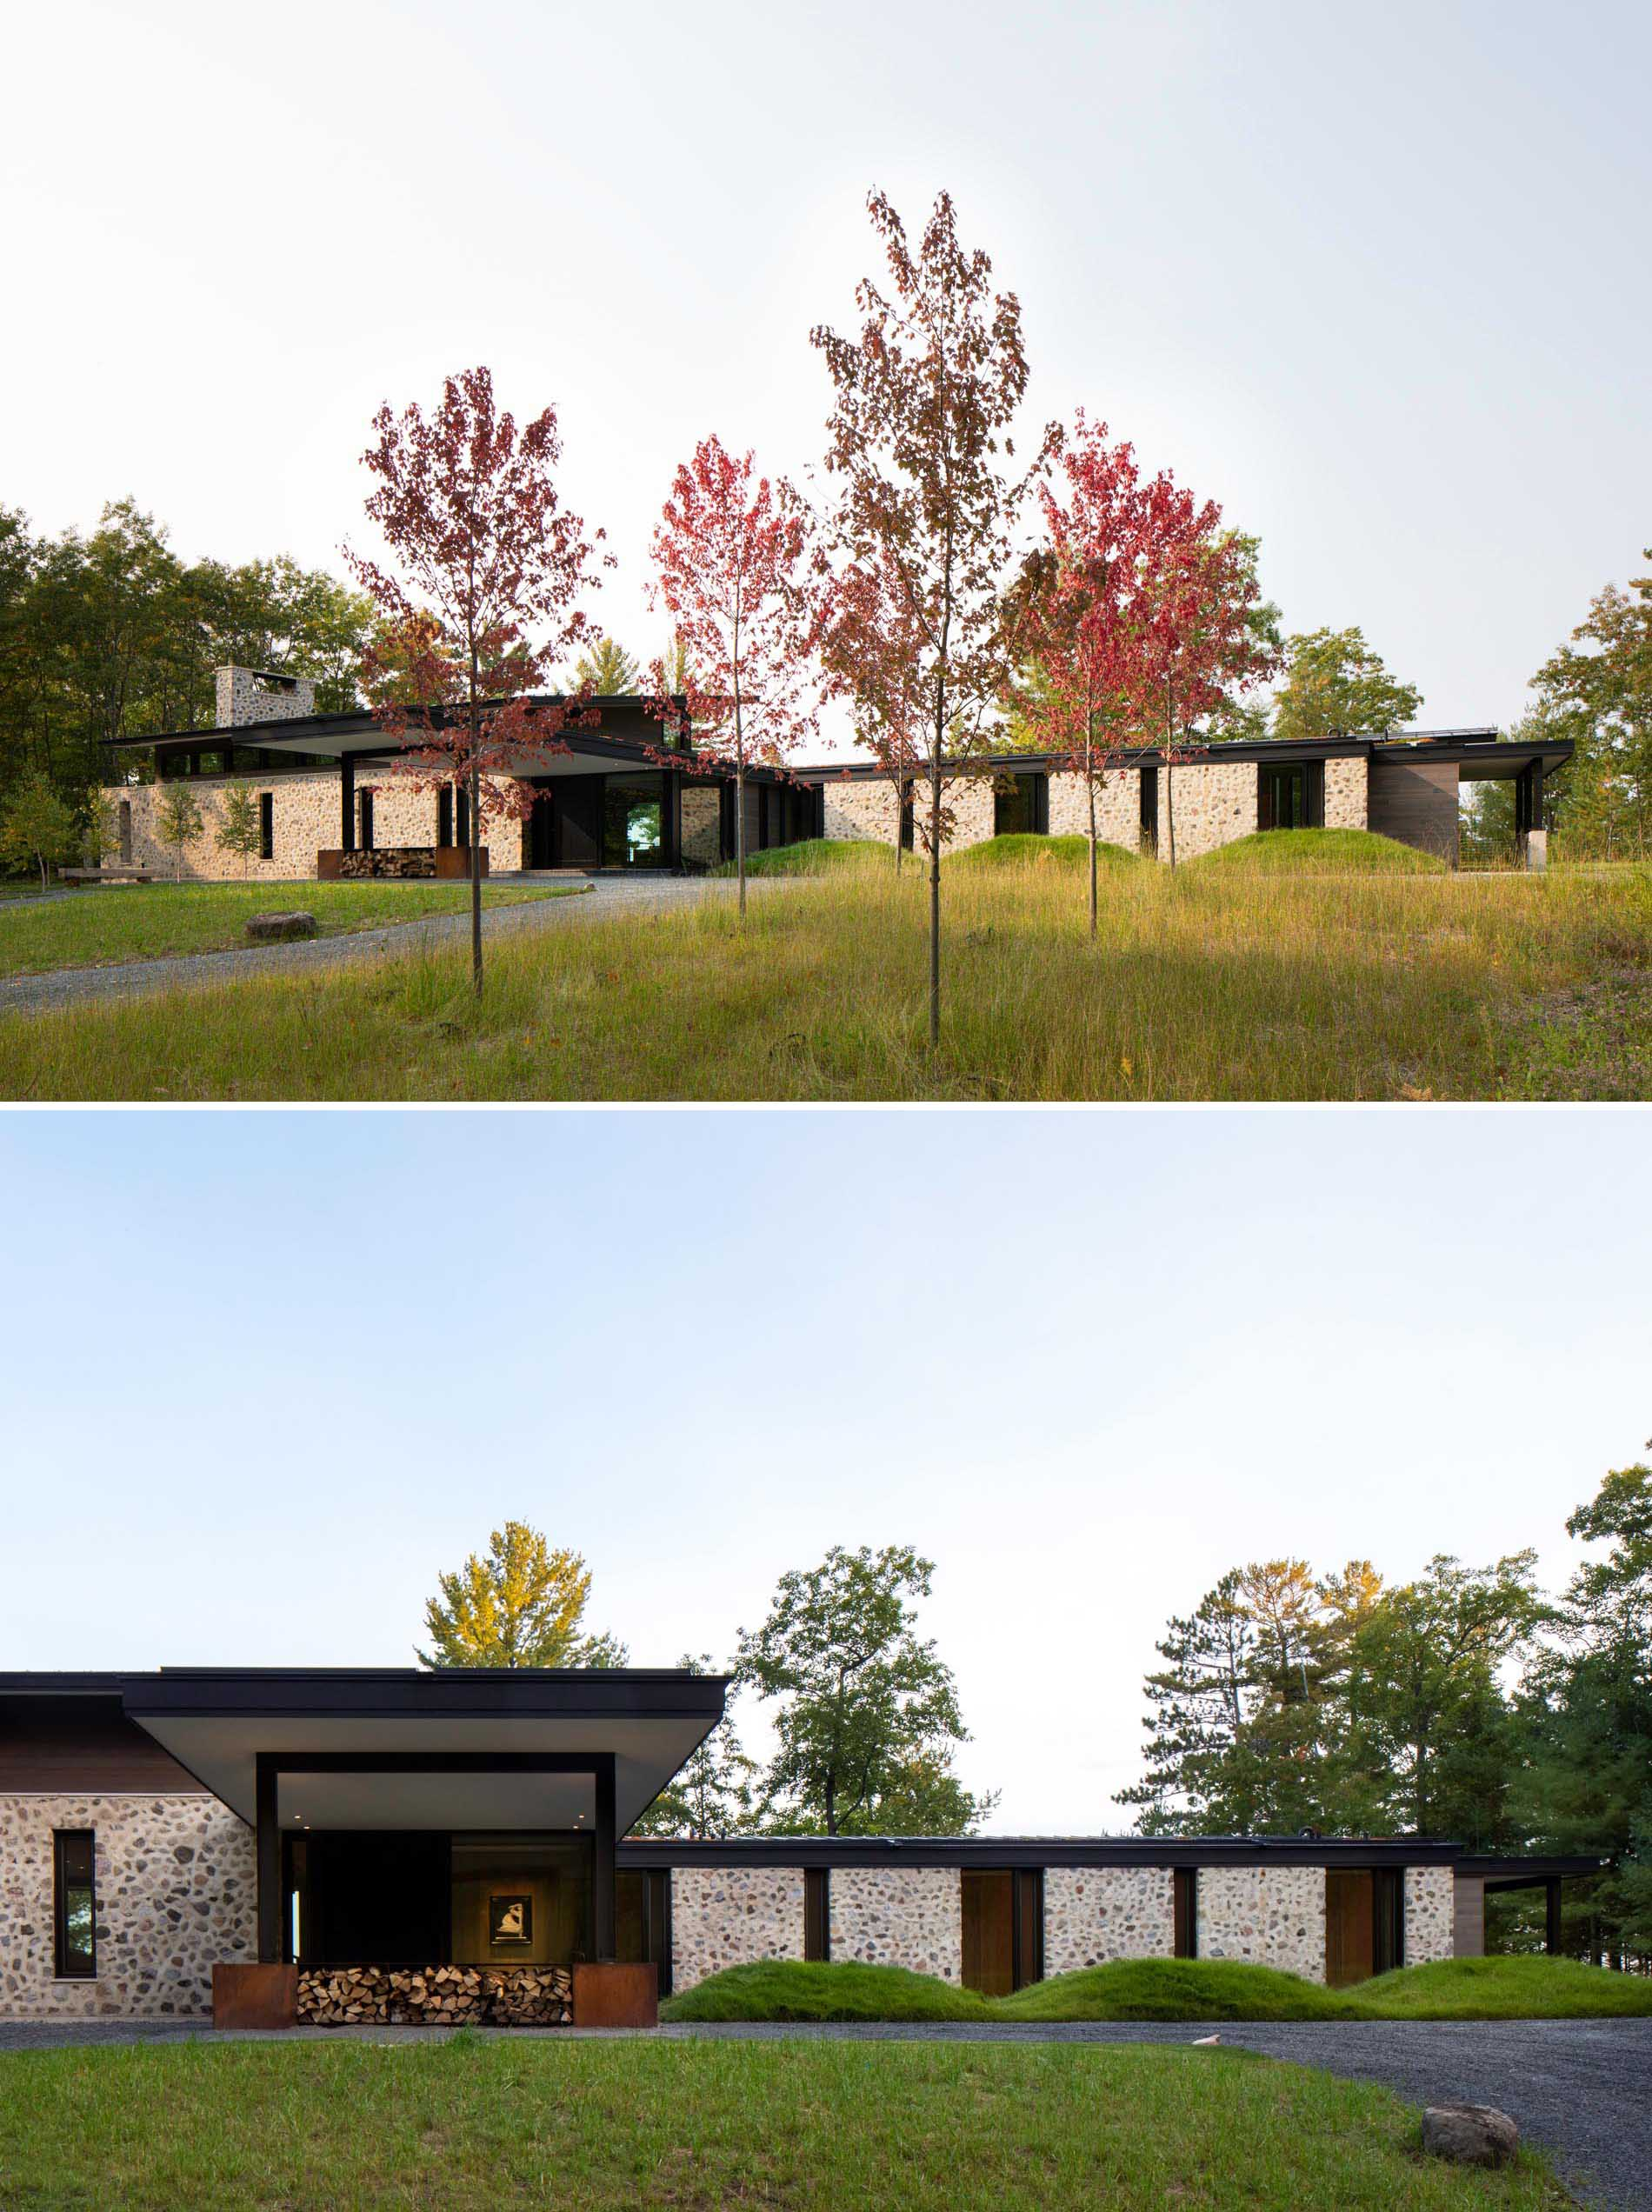 Rough-cut fieldstone set in thick, hand-troweled mortar stretches across this modern homes exterior's south facade and connects with the interior two-story central fireplace.